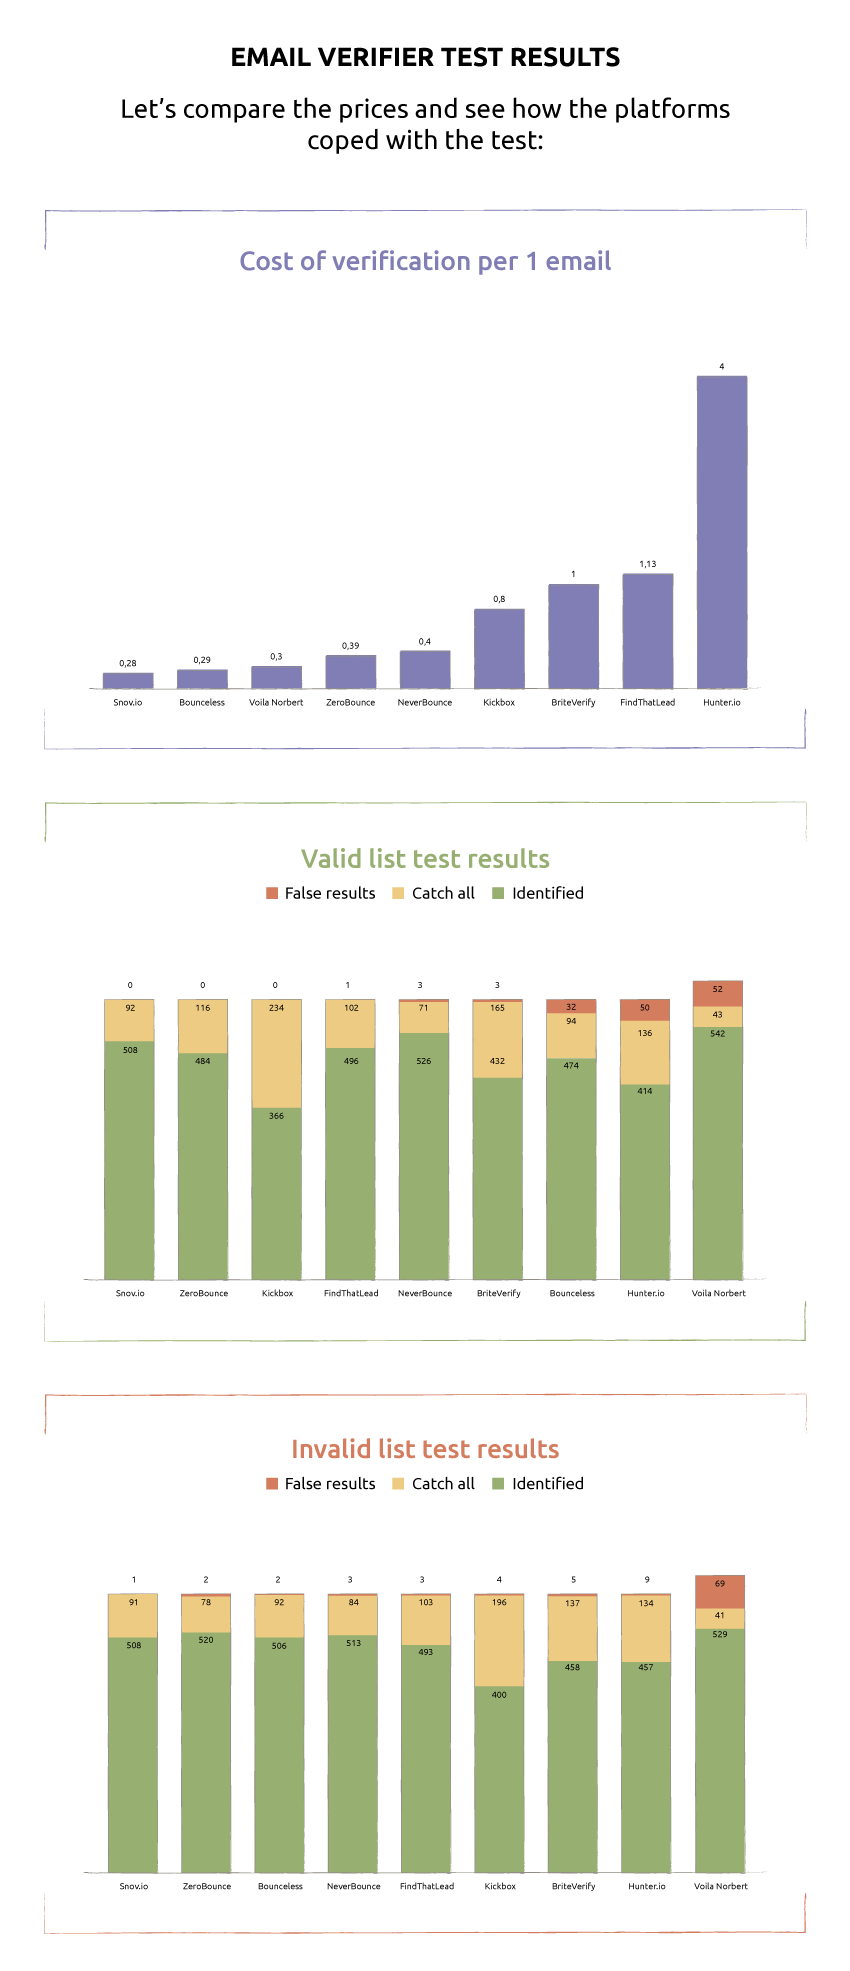 email verifier test results